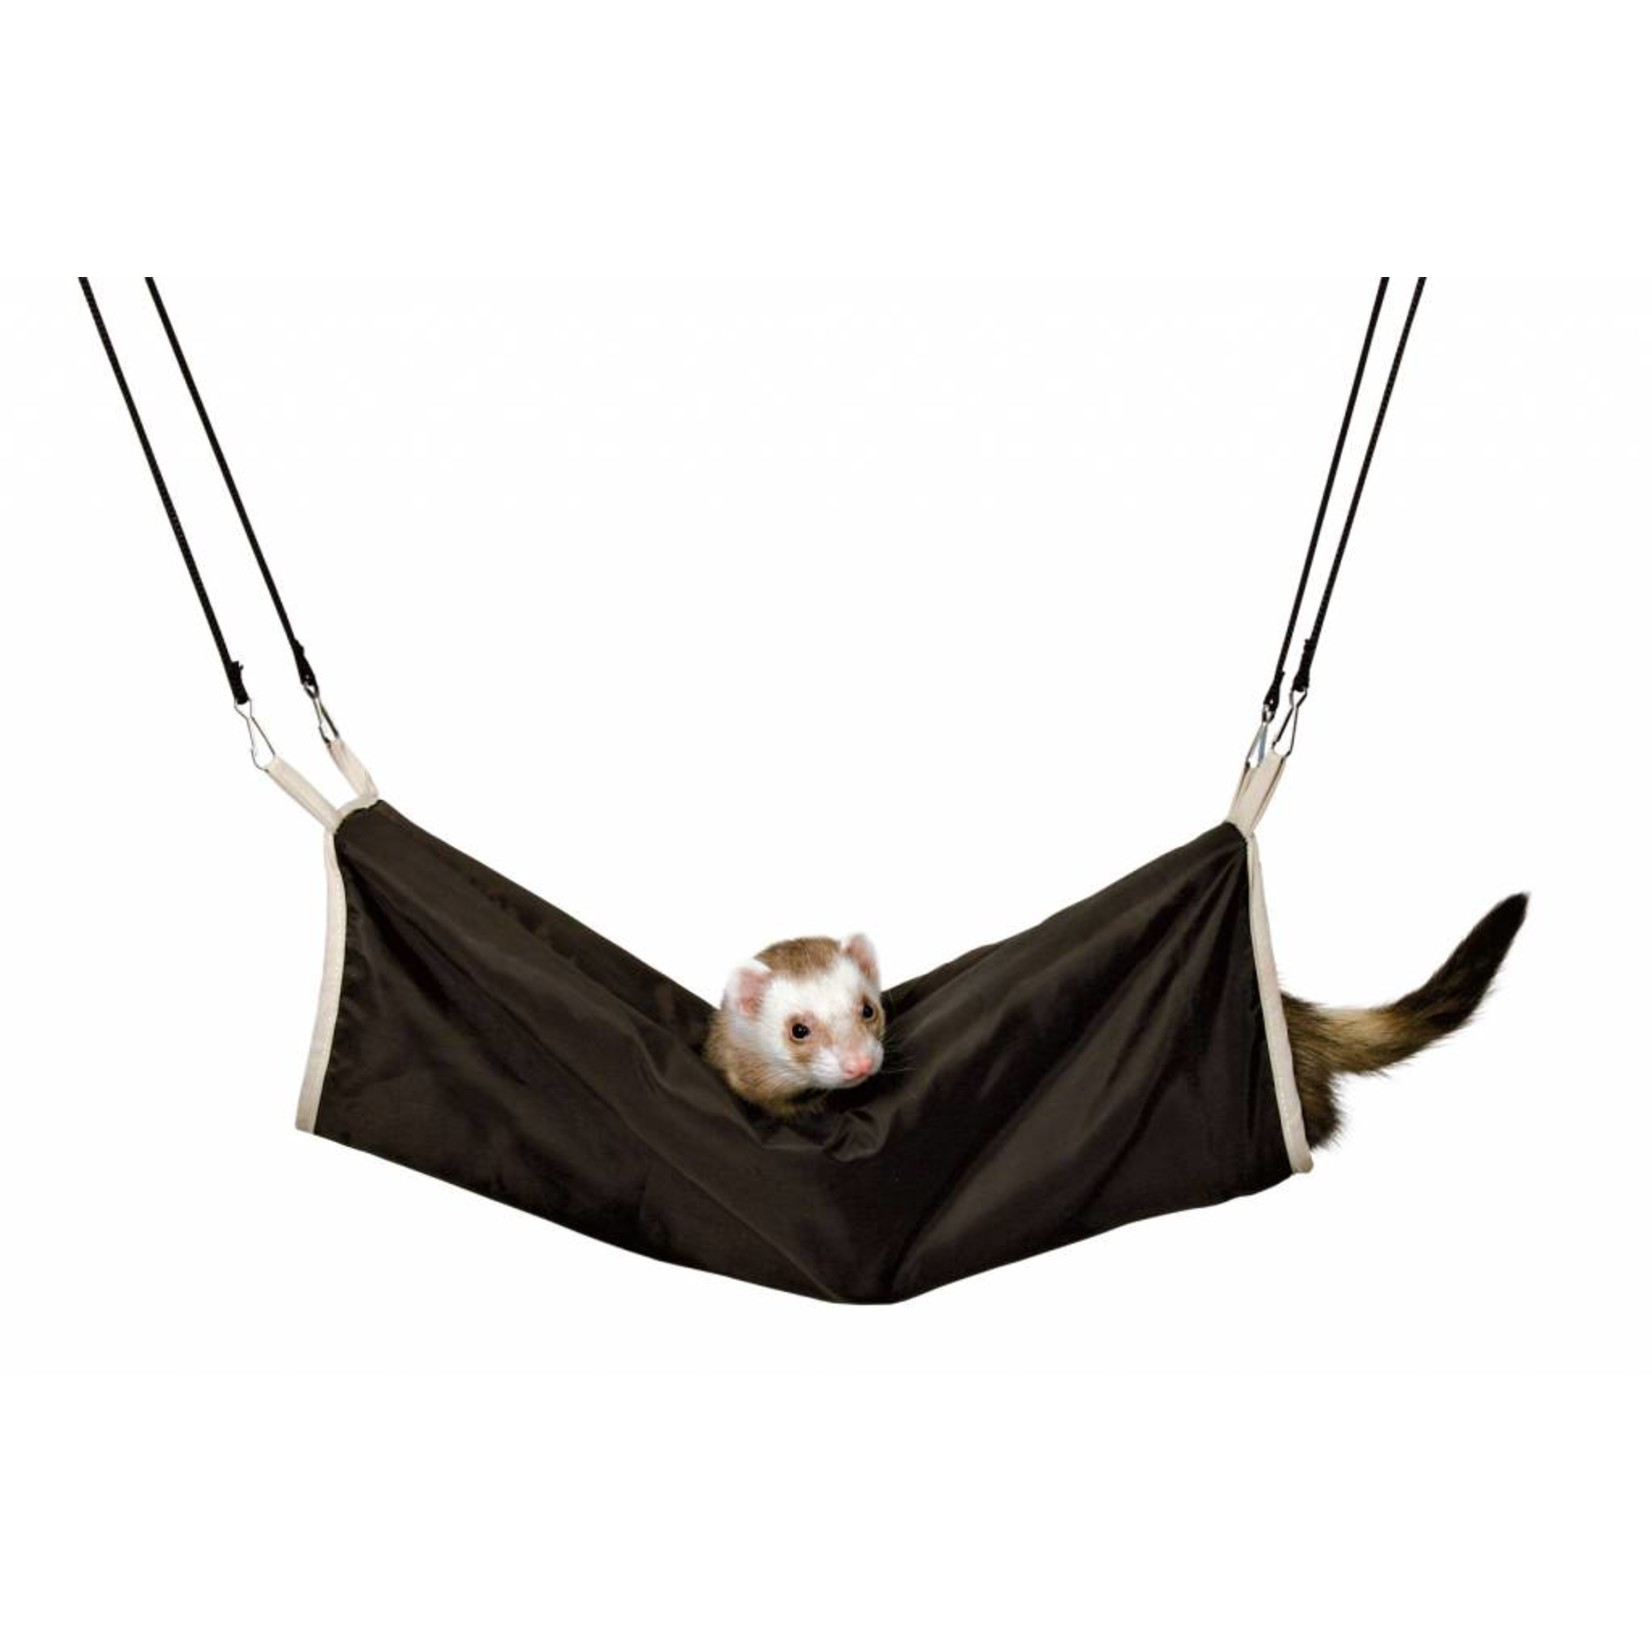 Trixie Cuddly Tunnel for Ferrets and Rats